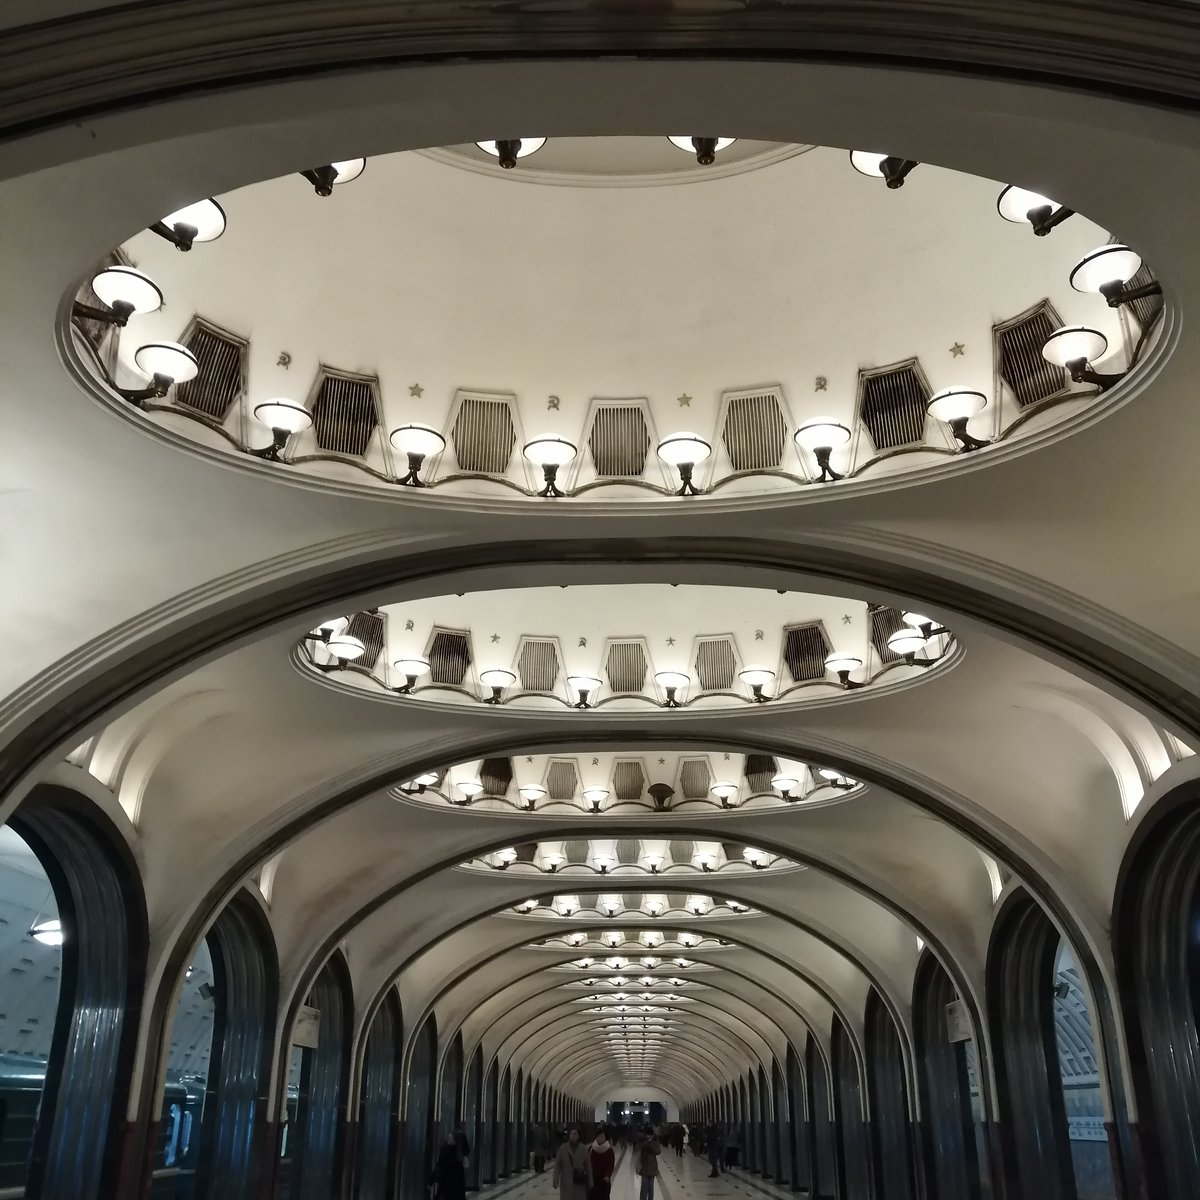 The beautiful #Mayakovskaya metro station in #Moscow before times of #coronavirus #travel #expat #Москва #Россияpic.twitter.com/AGj4qGaBHZ